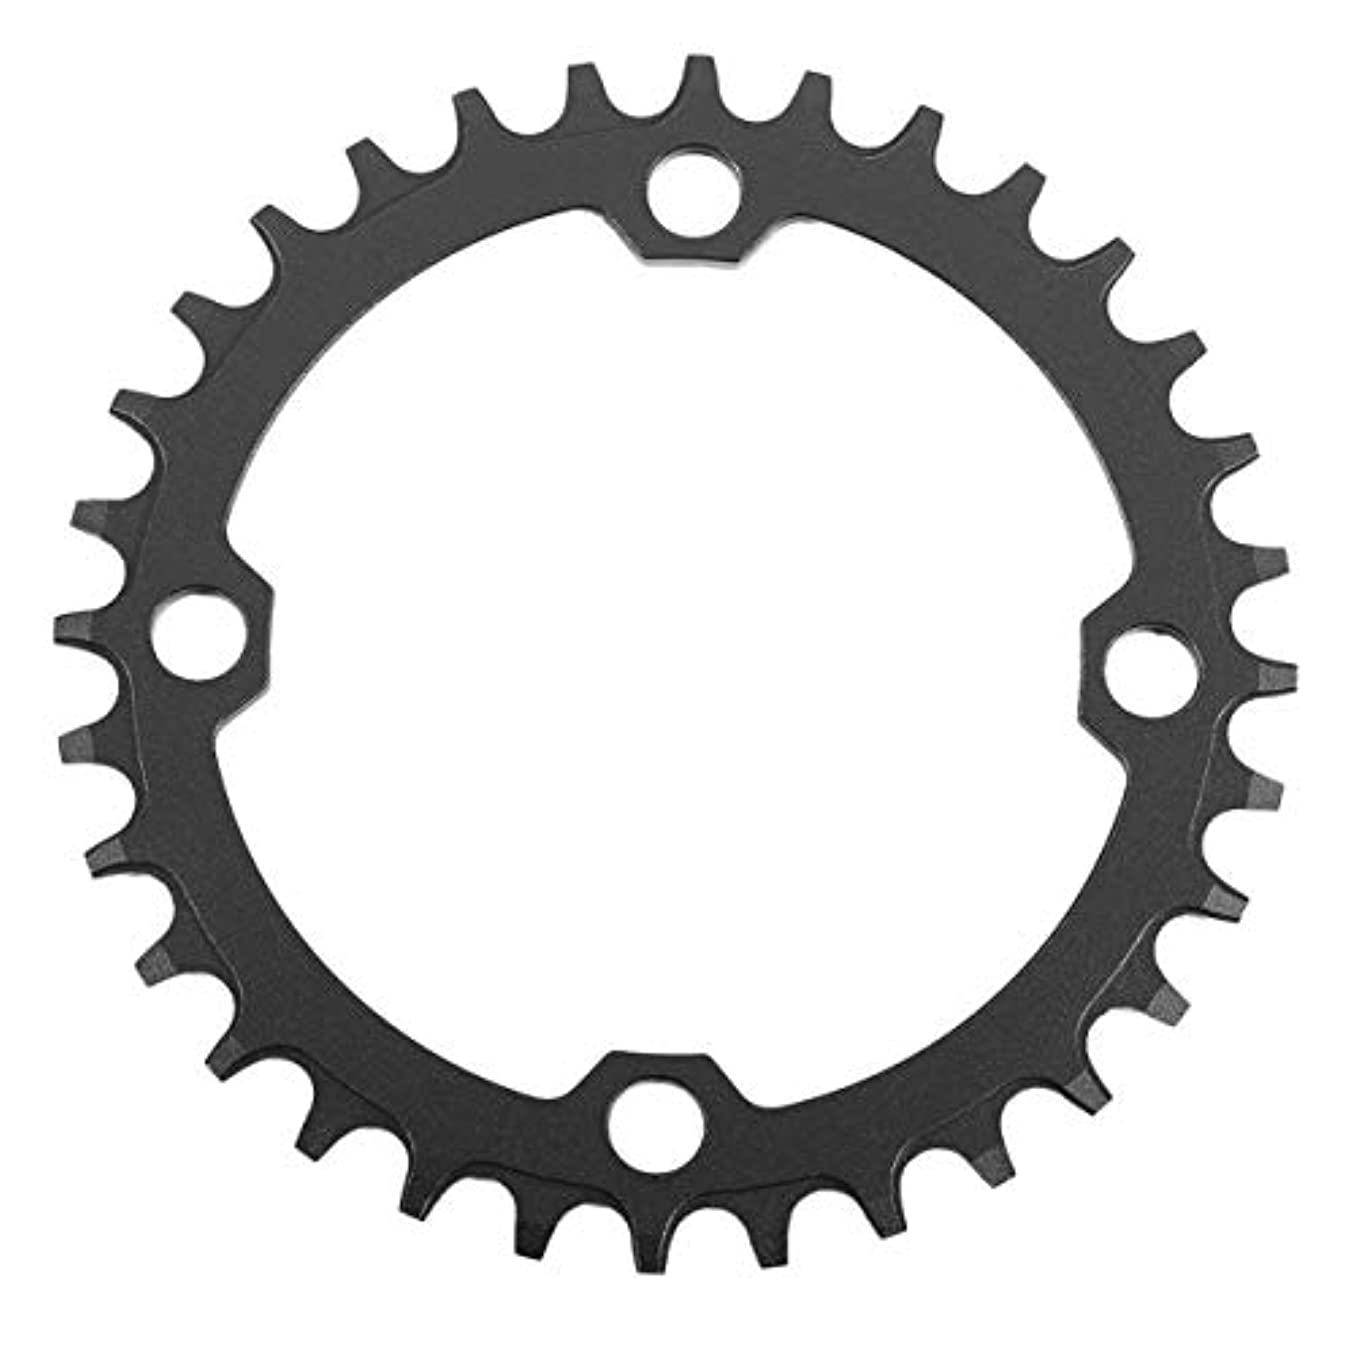 ピンク臭い石油DECKAS Narrow Wide Bike MTB Crank Round Oval Chainring Chain Ring自転車Chainwheel Bike Circle Single Plate-ブラック